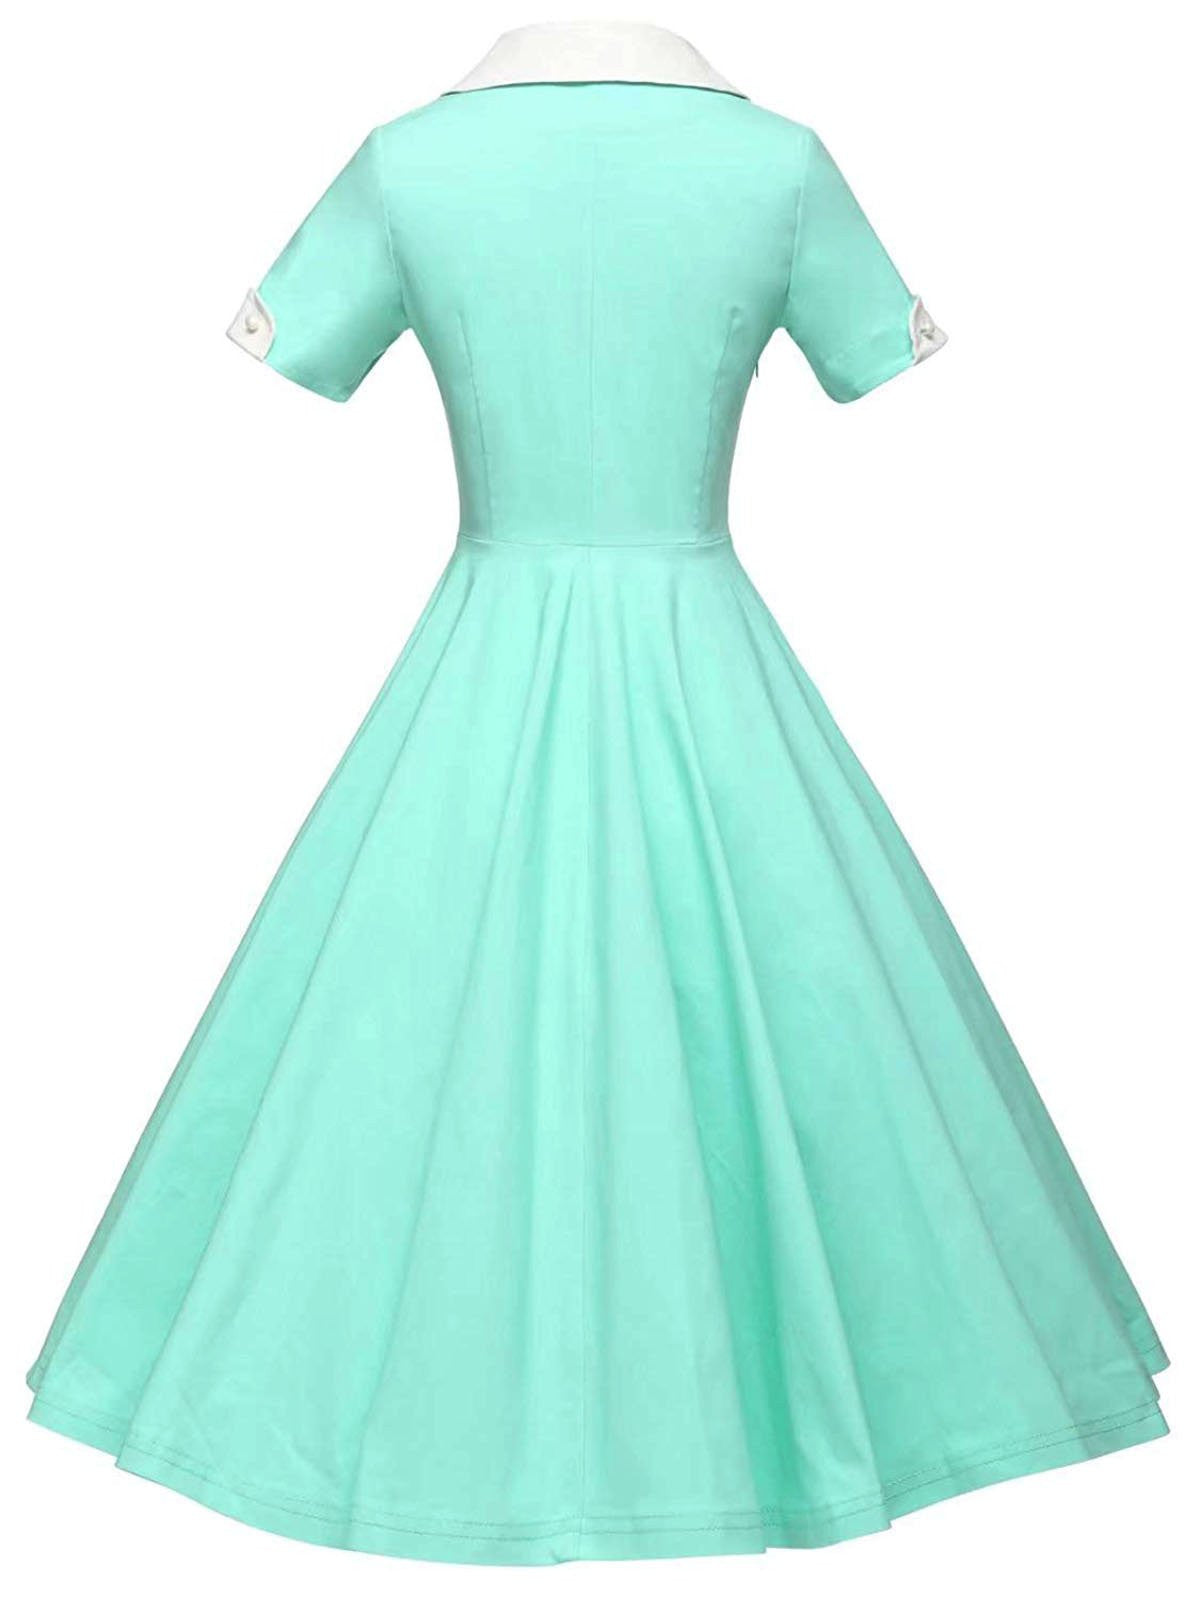 1950s Solid Turndown Collar Swing Dress – Retro Stage - Chic Vintage ...